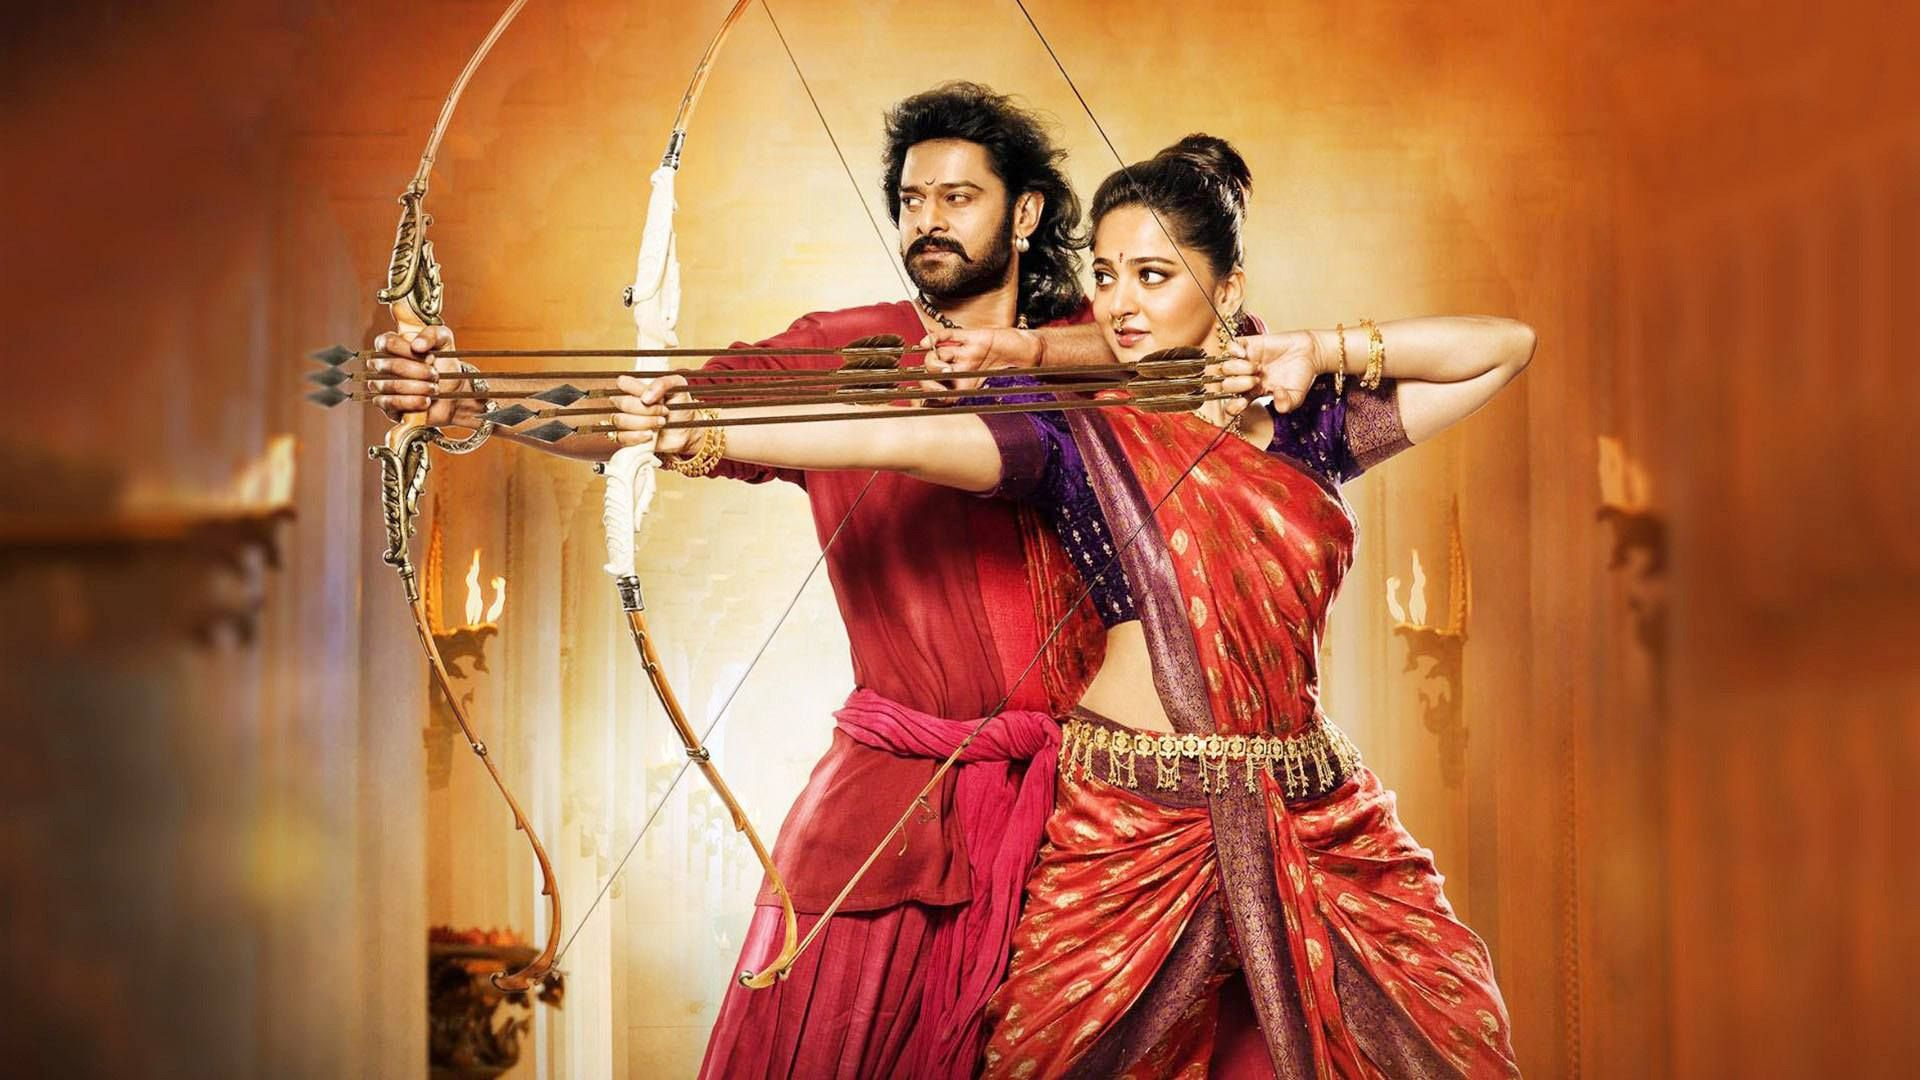 bahubali new images download